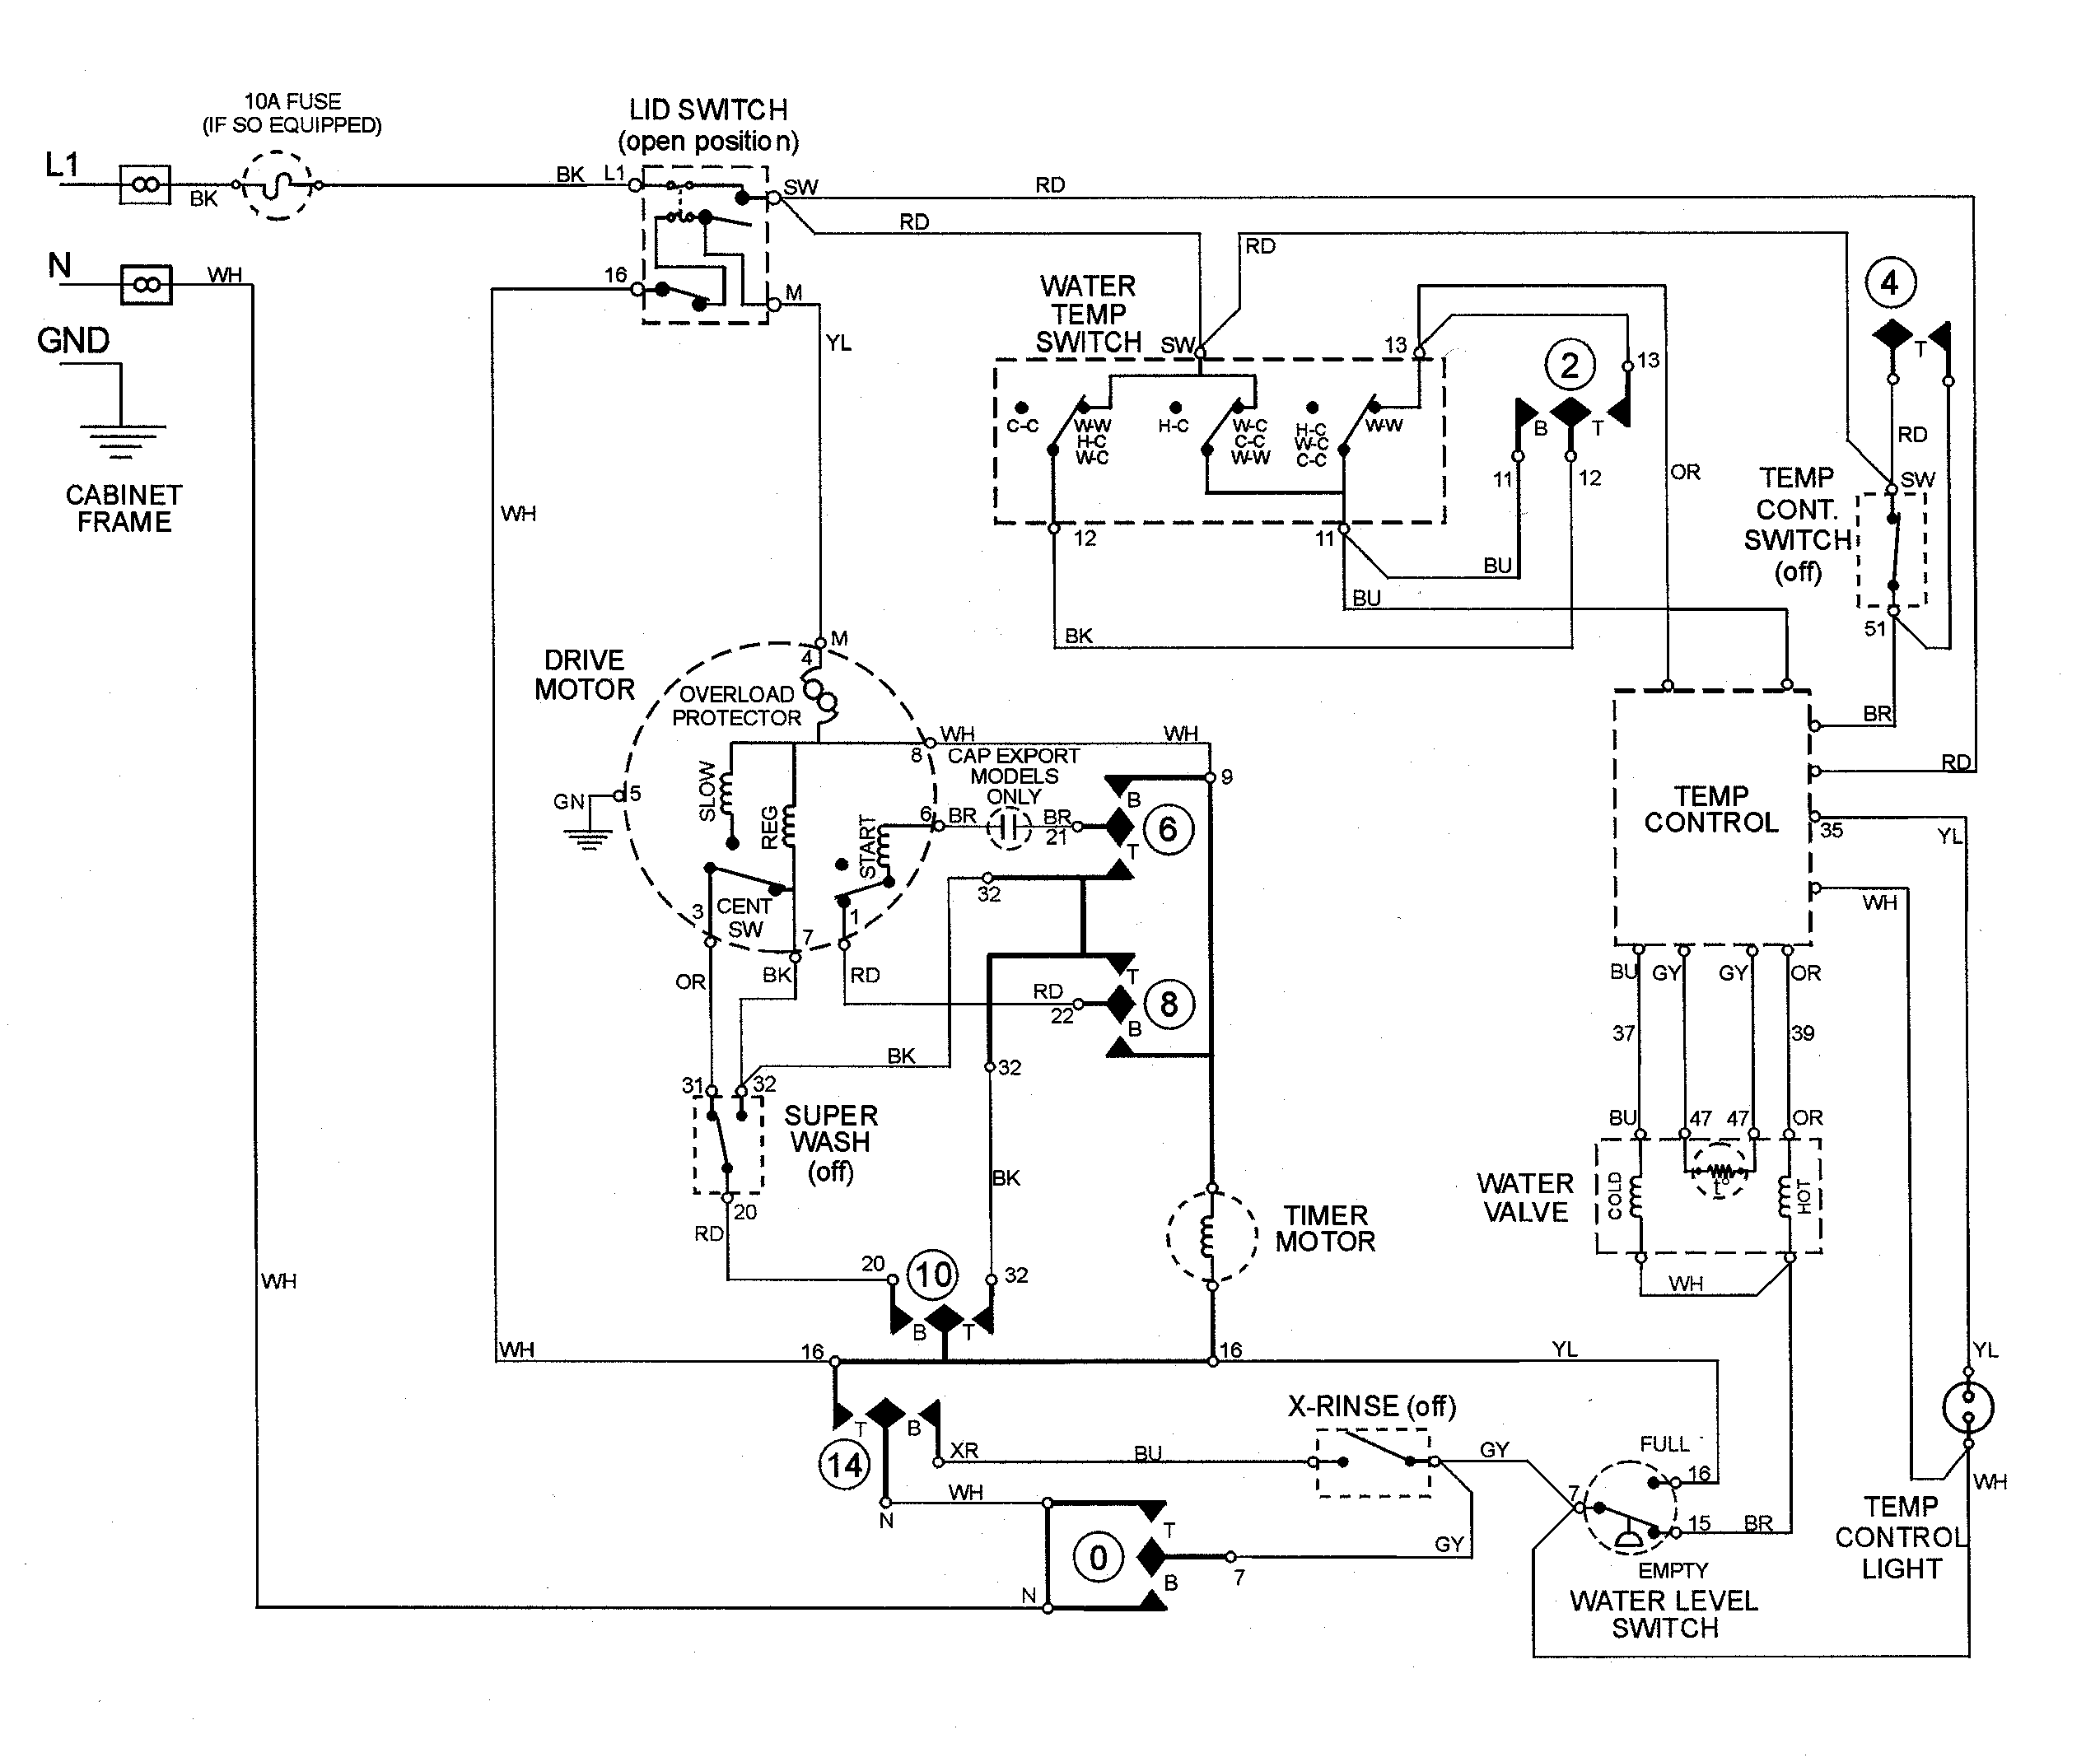 maytag single phase motor wiring diagrams ge washing machine motor wiring diagram, ge, wiring ... switch single phase motor wiring diagrams #5